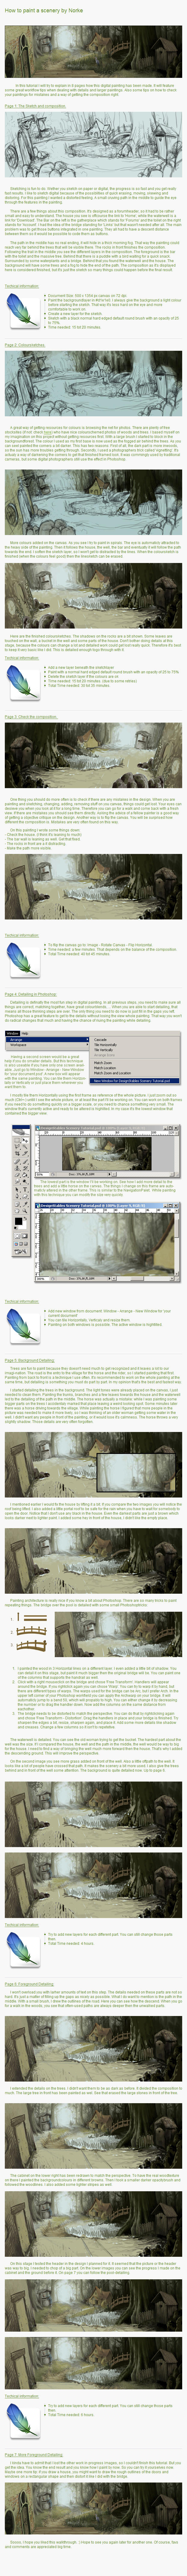 How To Make A Digital Painting by Norke